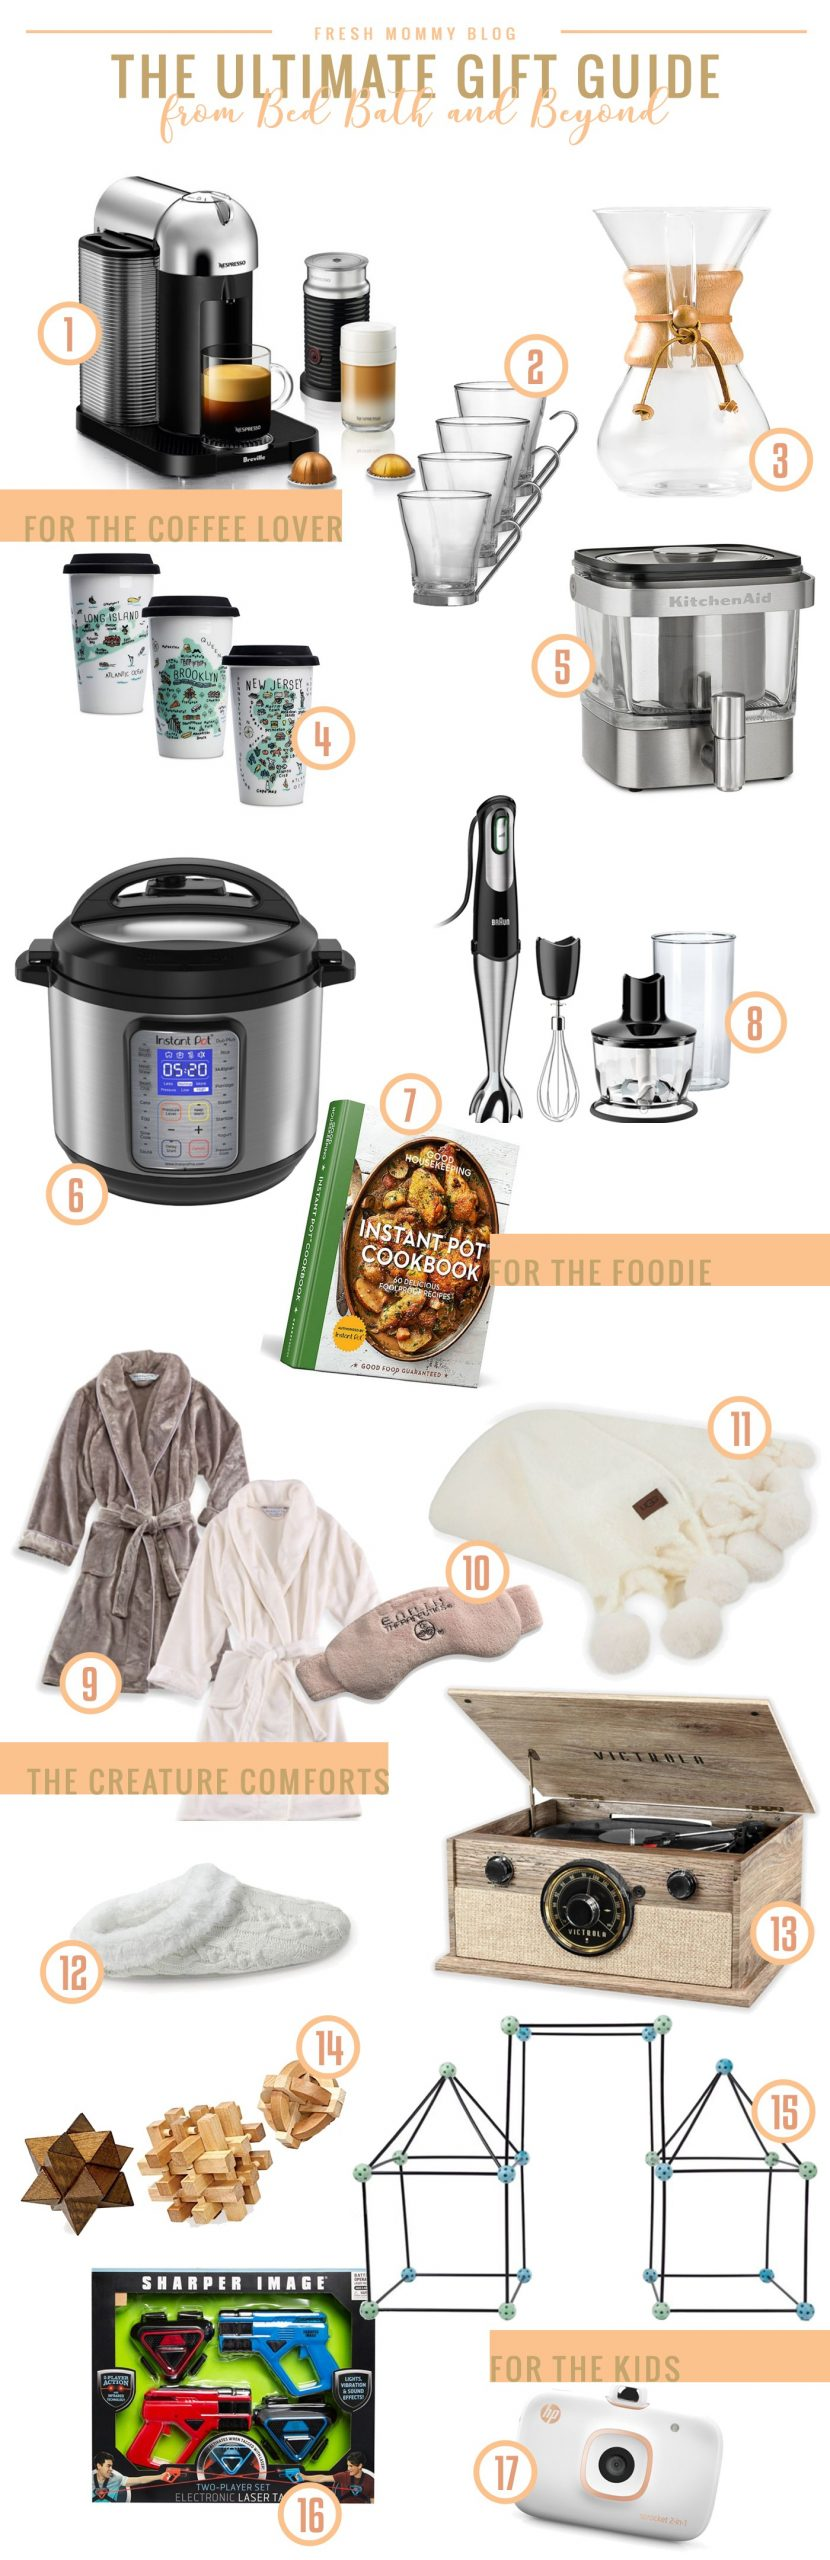 The Best Bed Bath & Beyond Gifts for your Entire Family